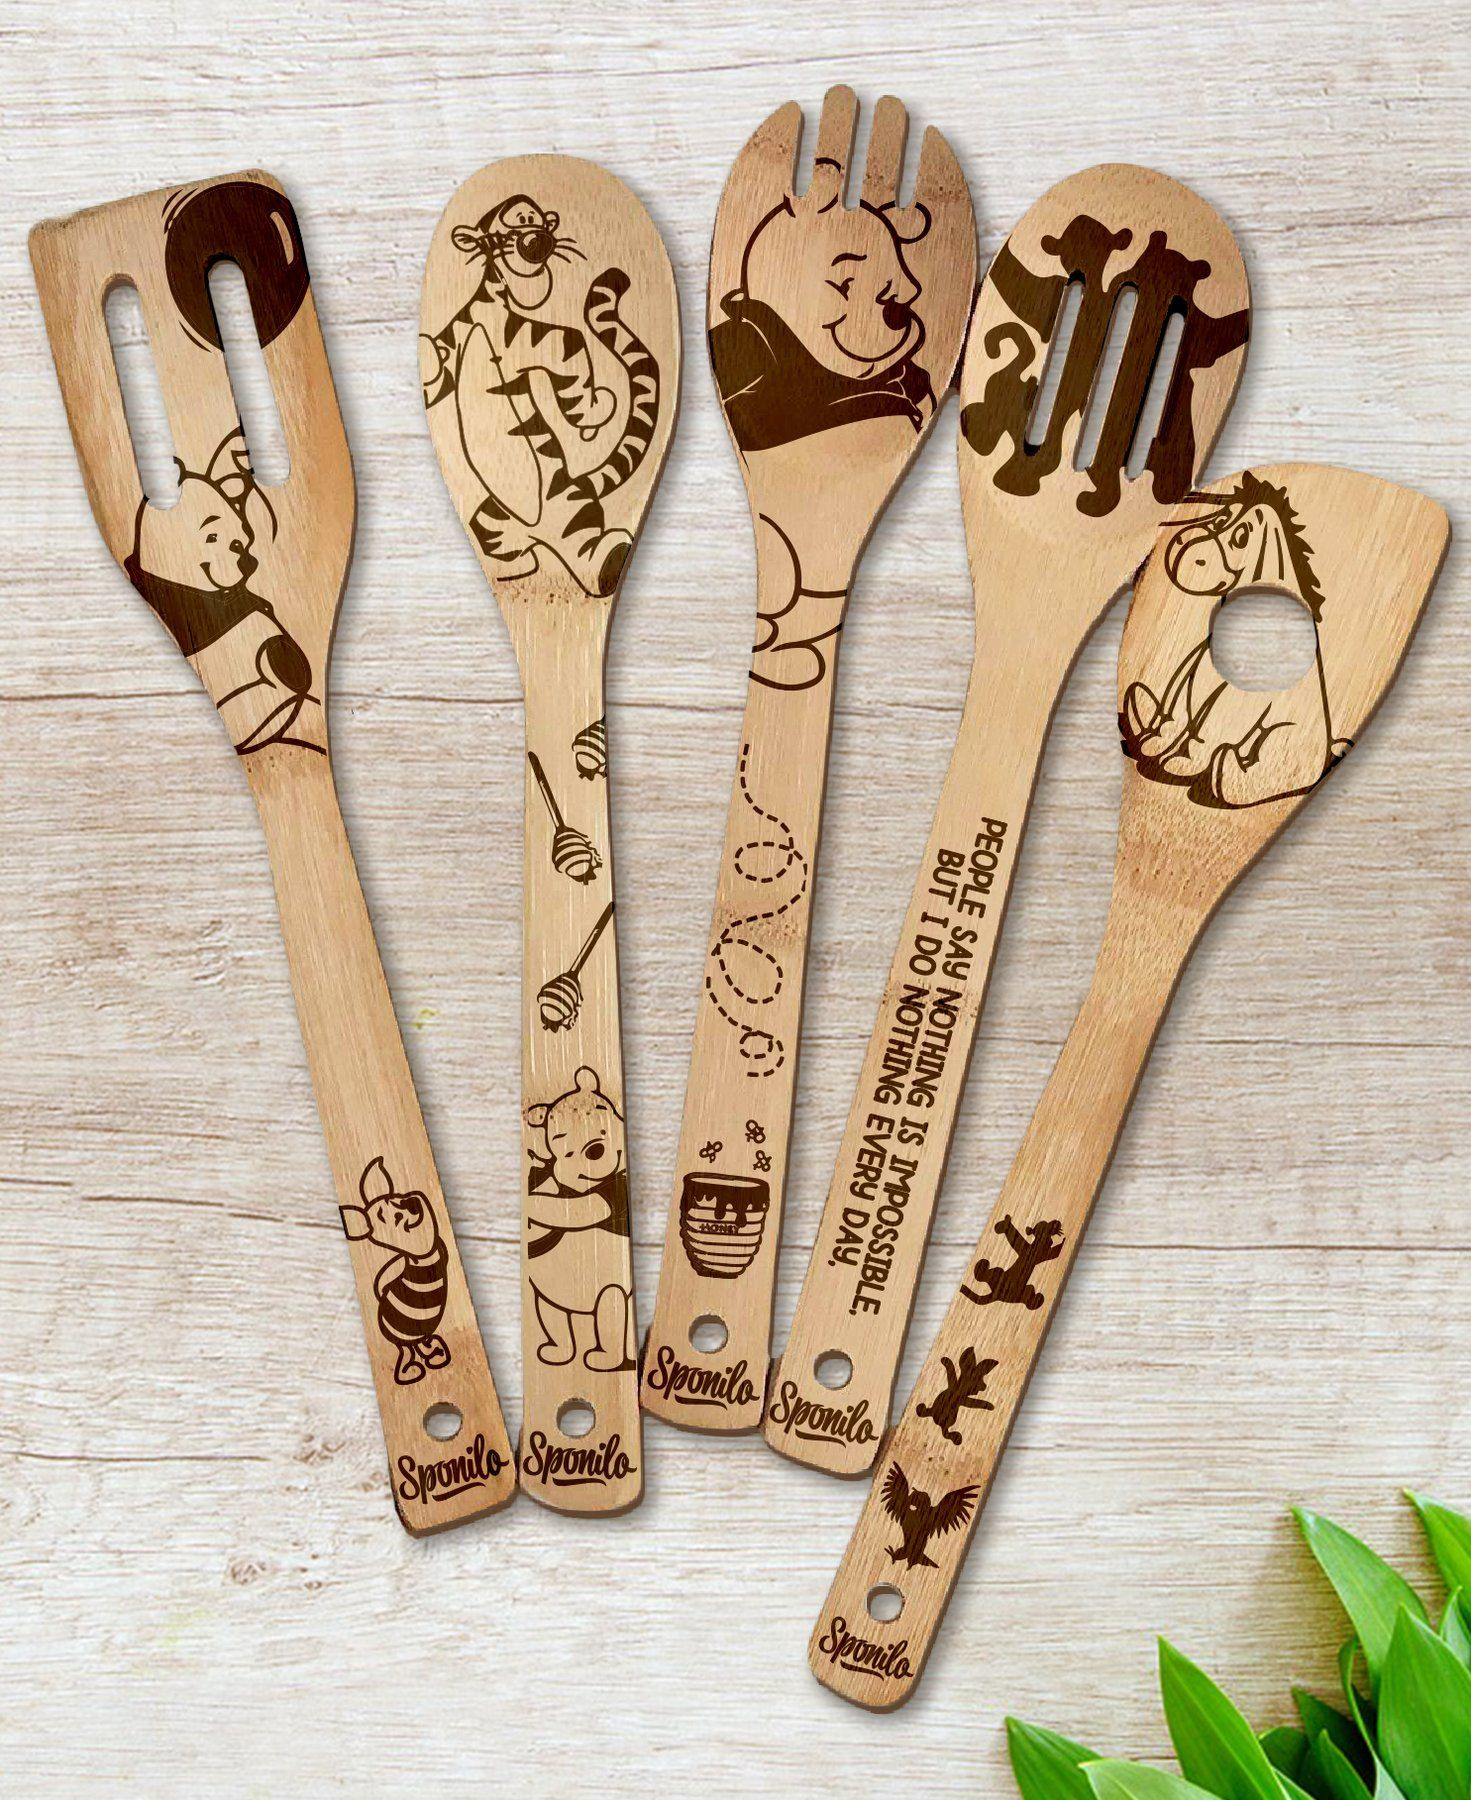 bf422b590a5e0 Winnie-the-Pooh Wood-burned Spoons Set | Disney Dreaming | Wooden ...